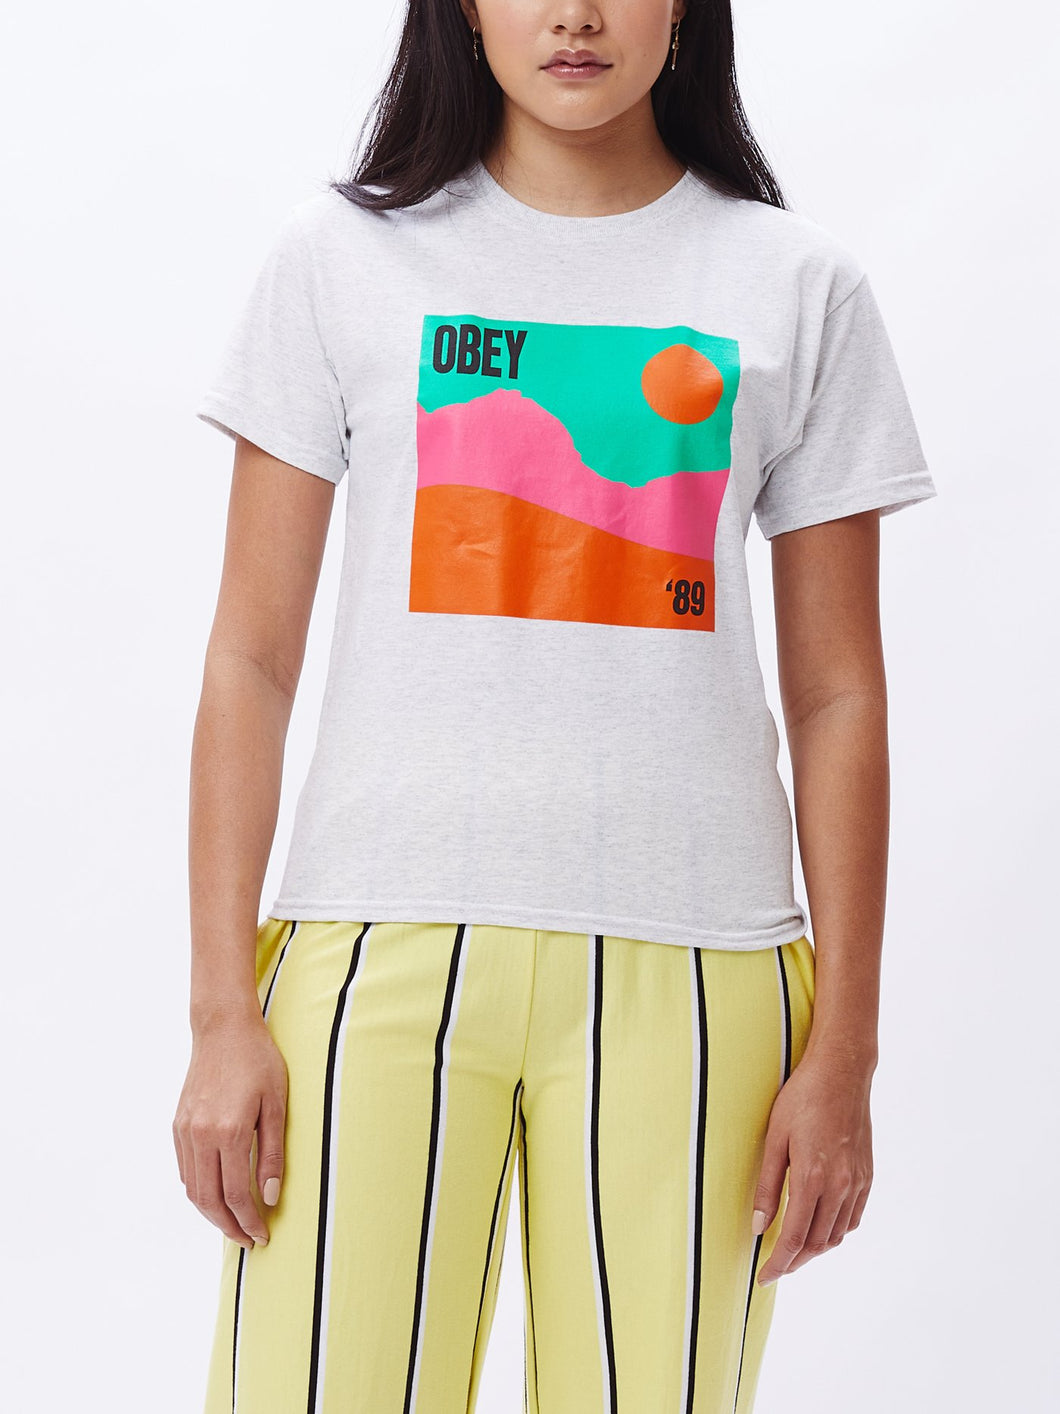 OBEY LANDSCAPE SHRUNKEN T-SHIRT WHITE